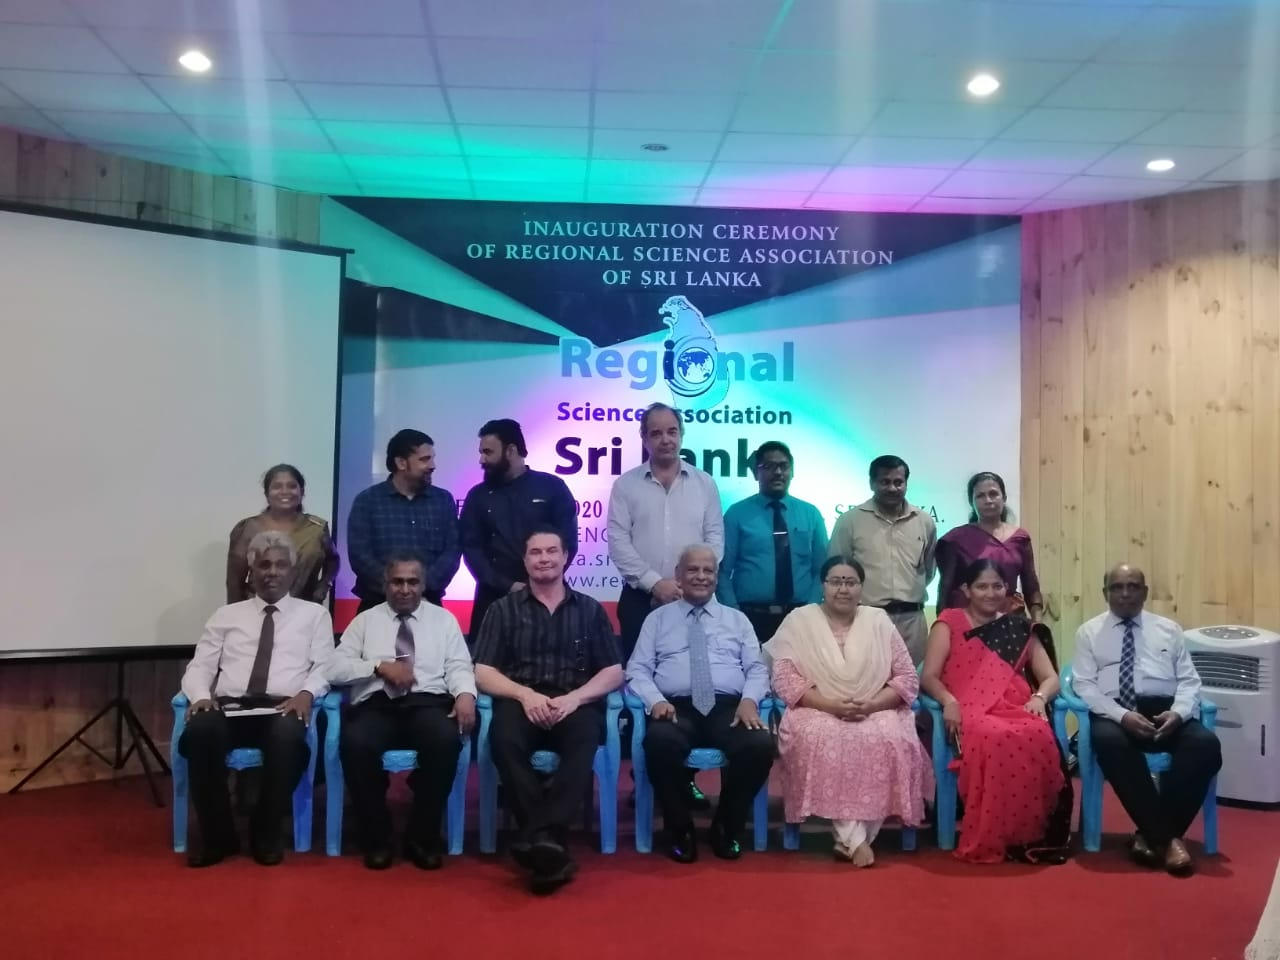 Inauguration of the Sri Lanka Section of Regional Science